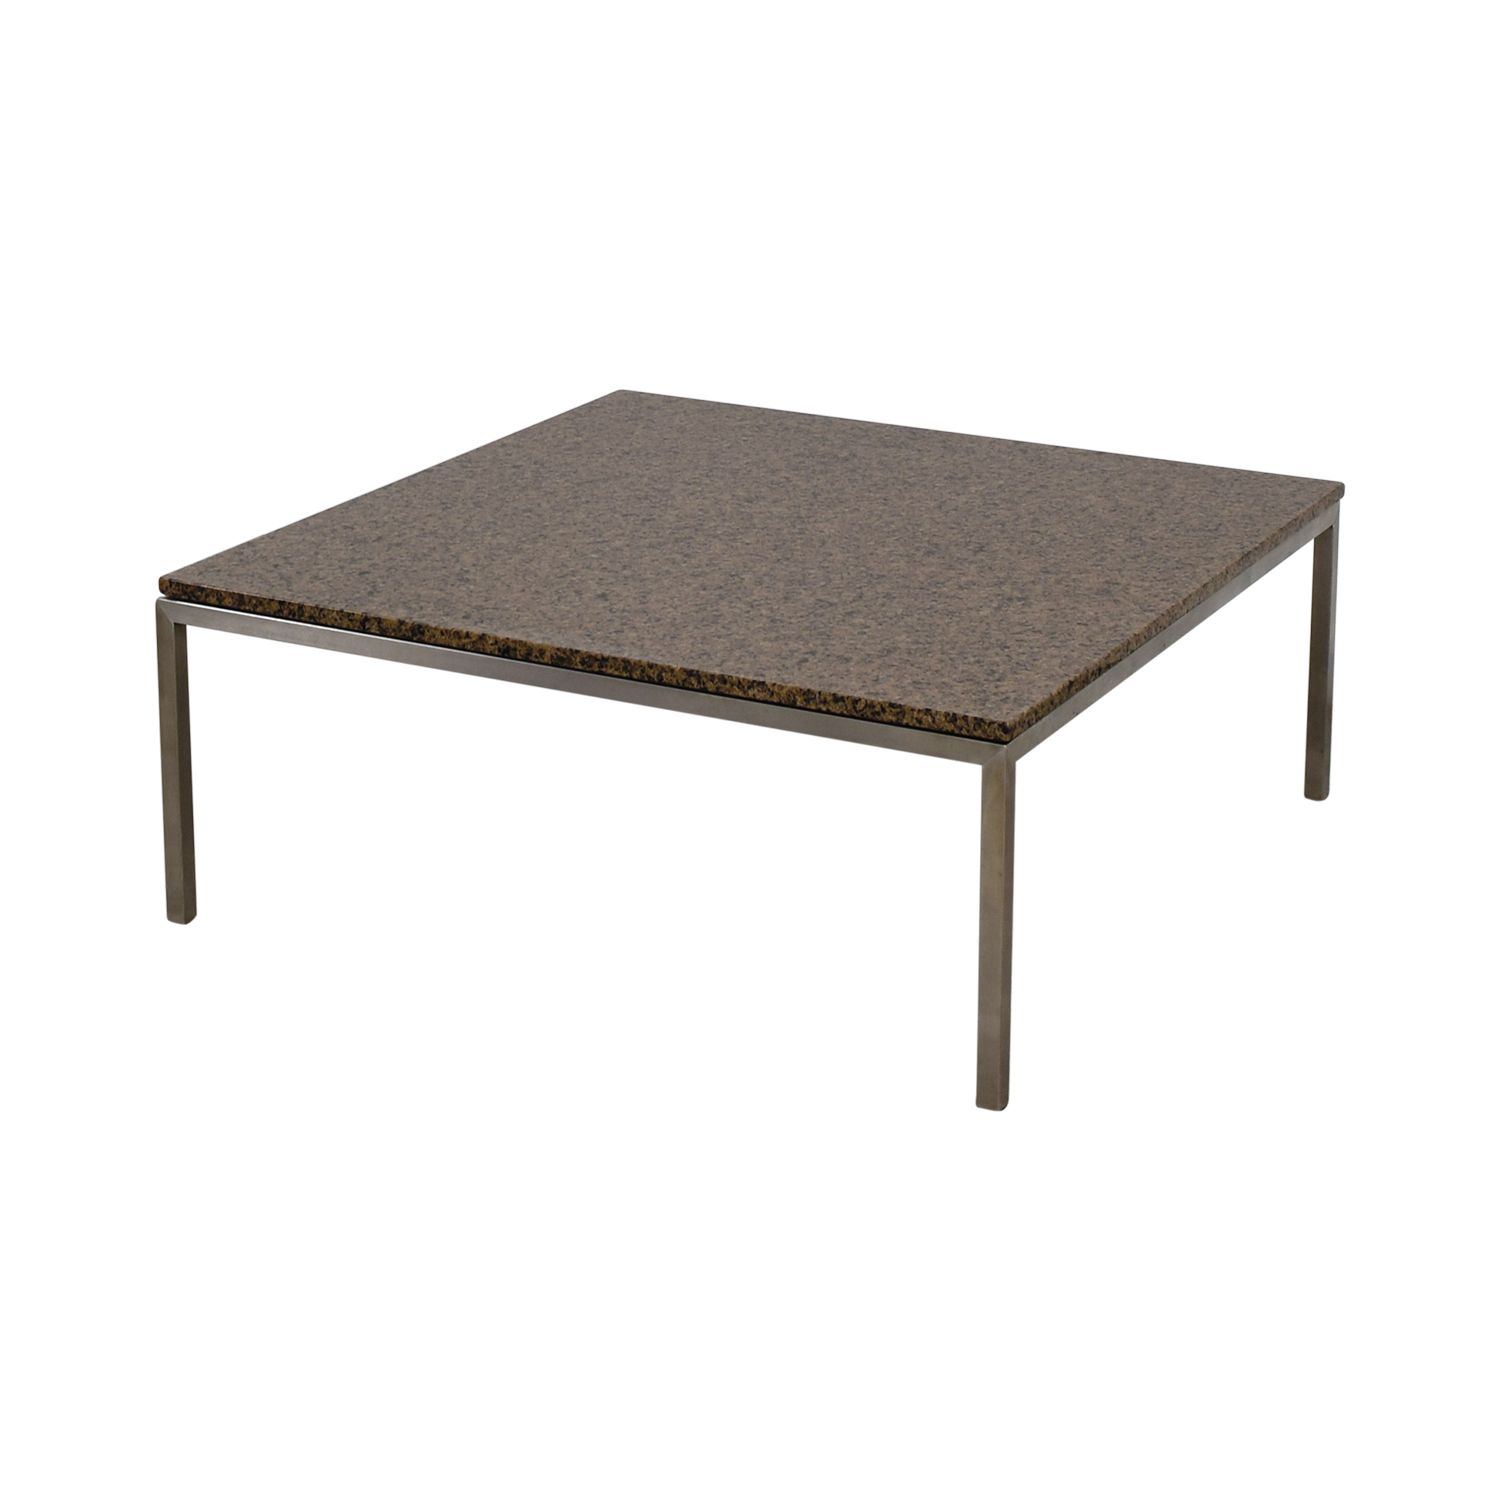 79 Off Room And Board Room Board Square Coffee Table Tables